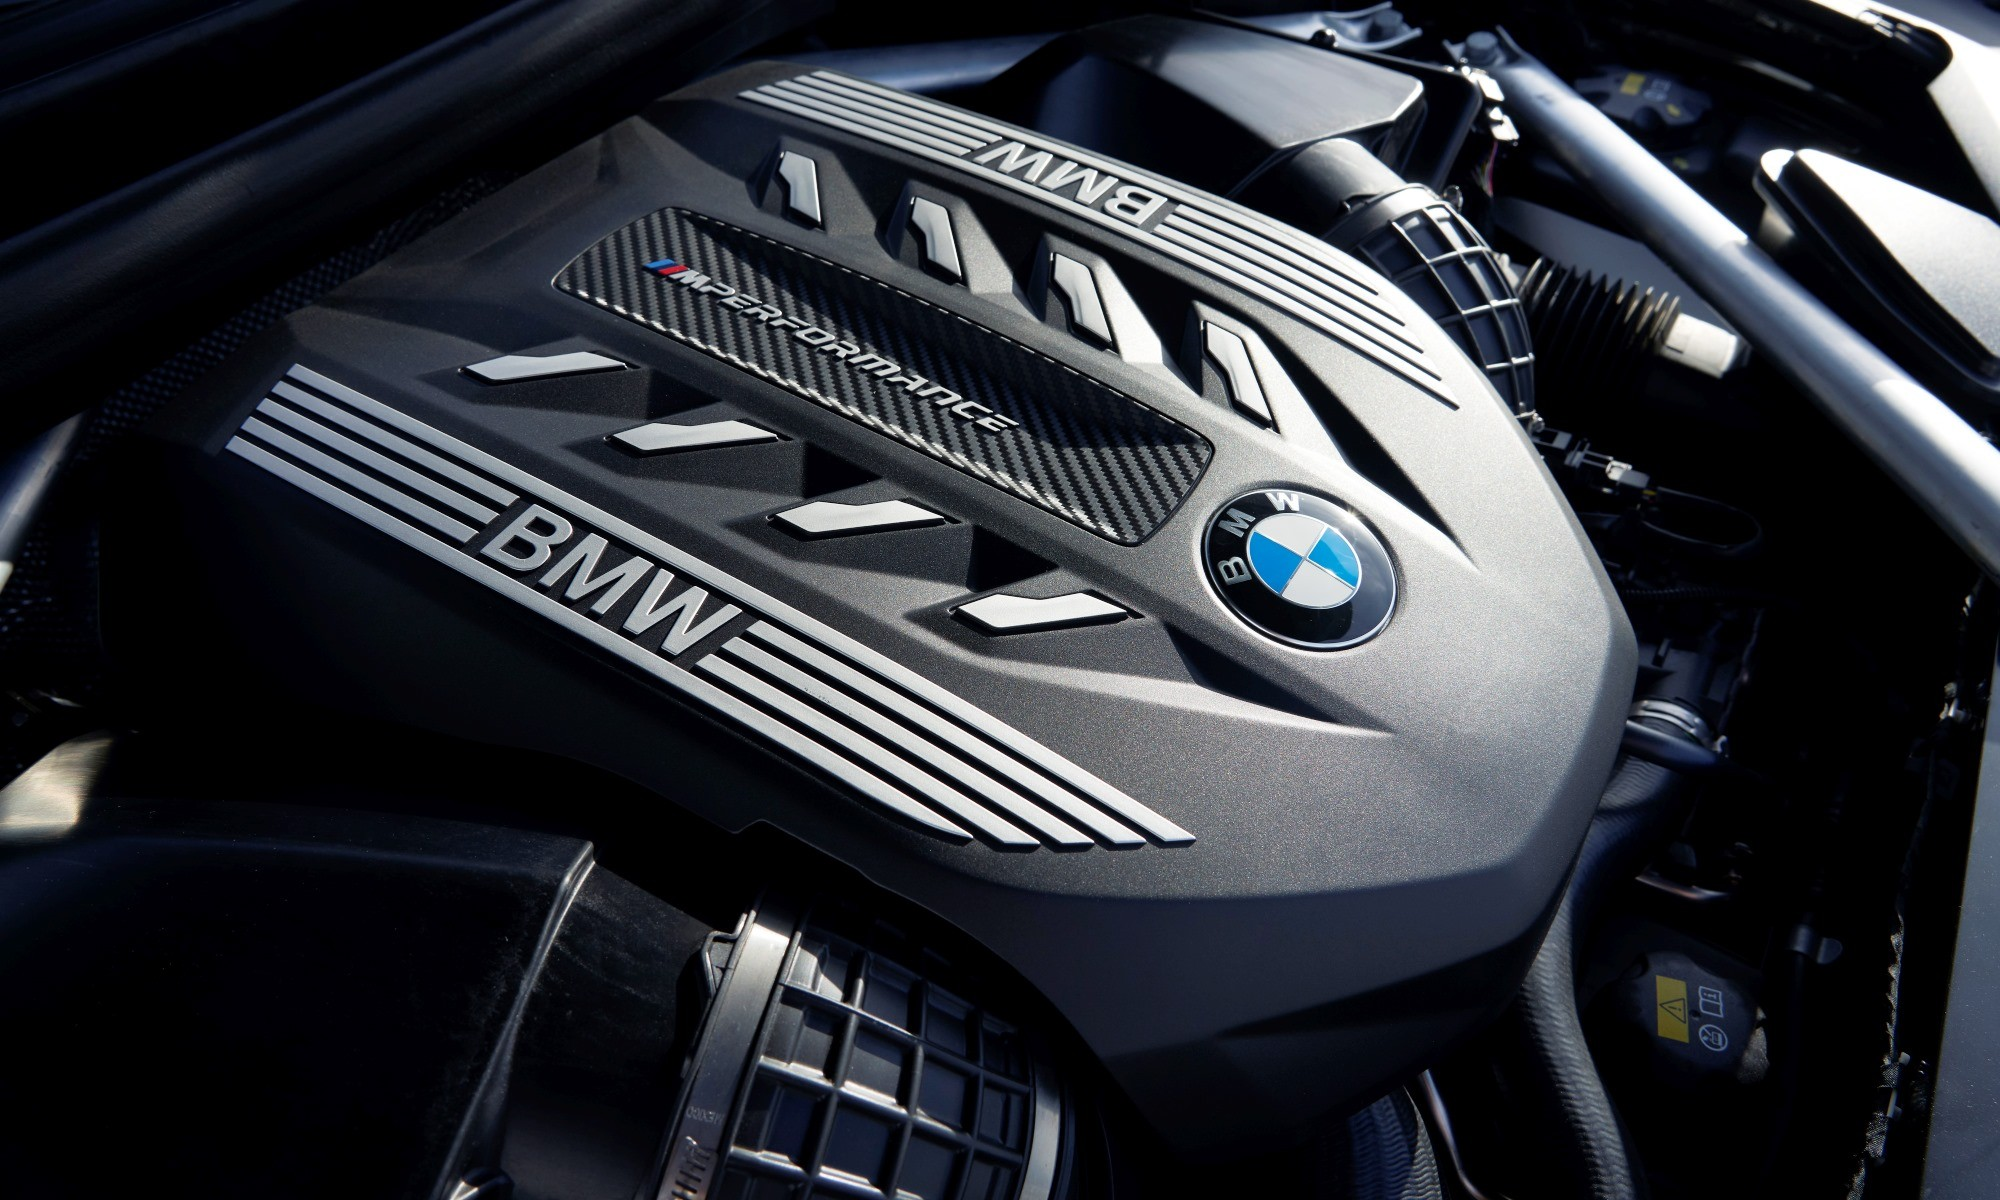 New BMW X6 engine